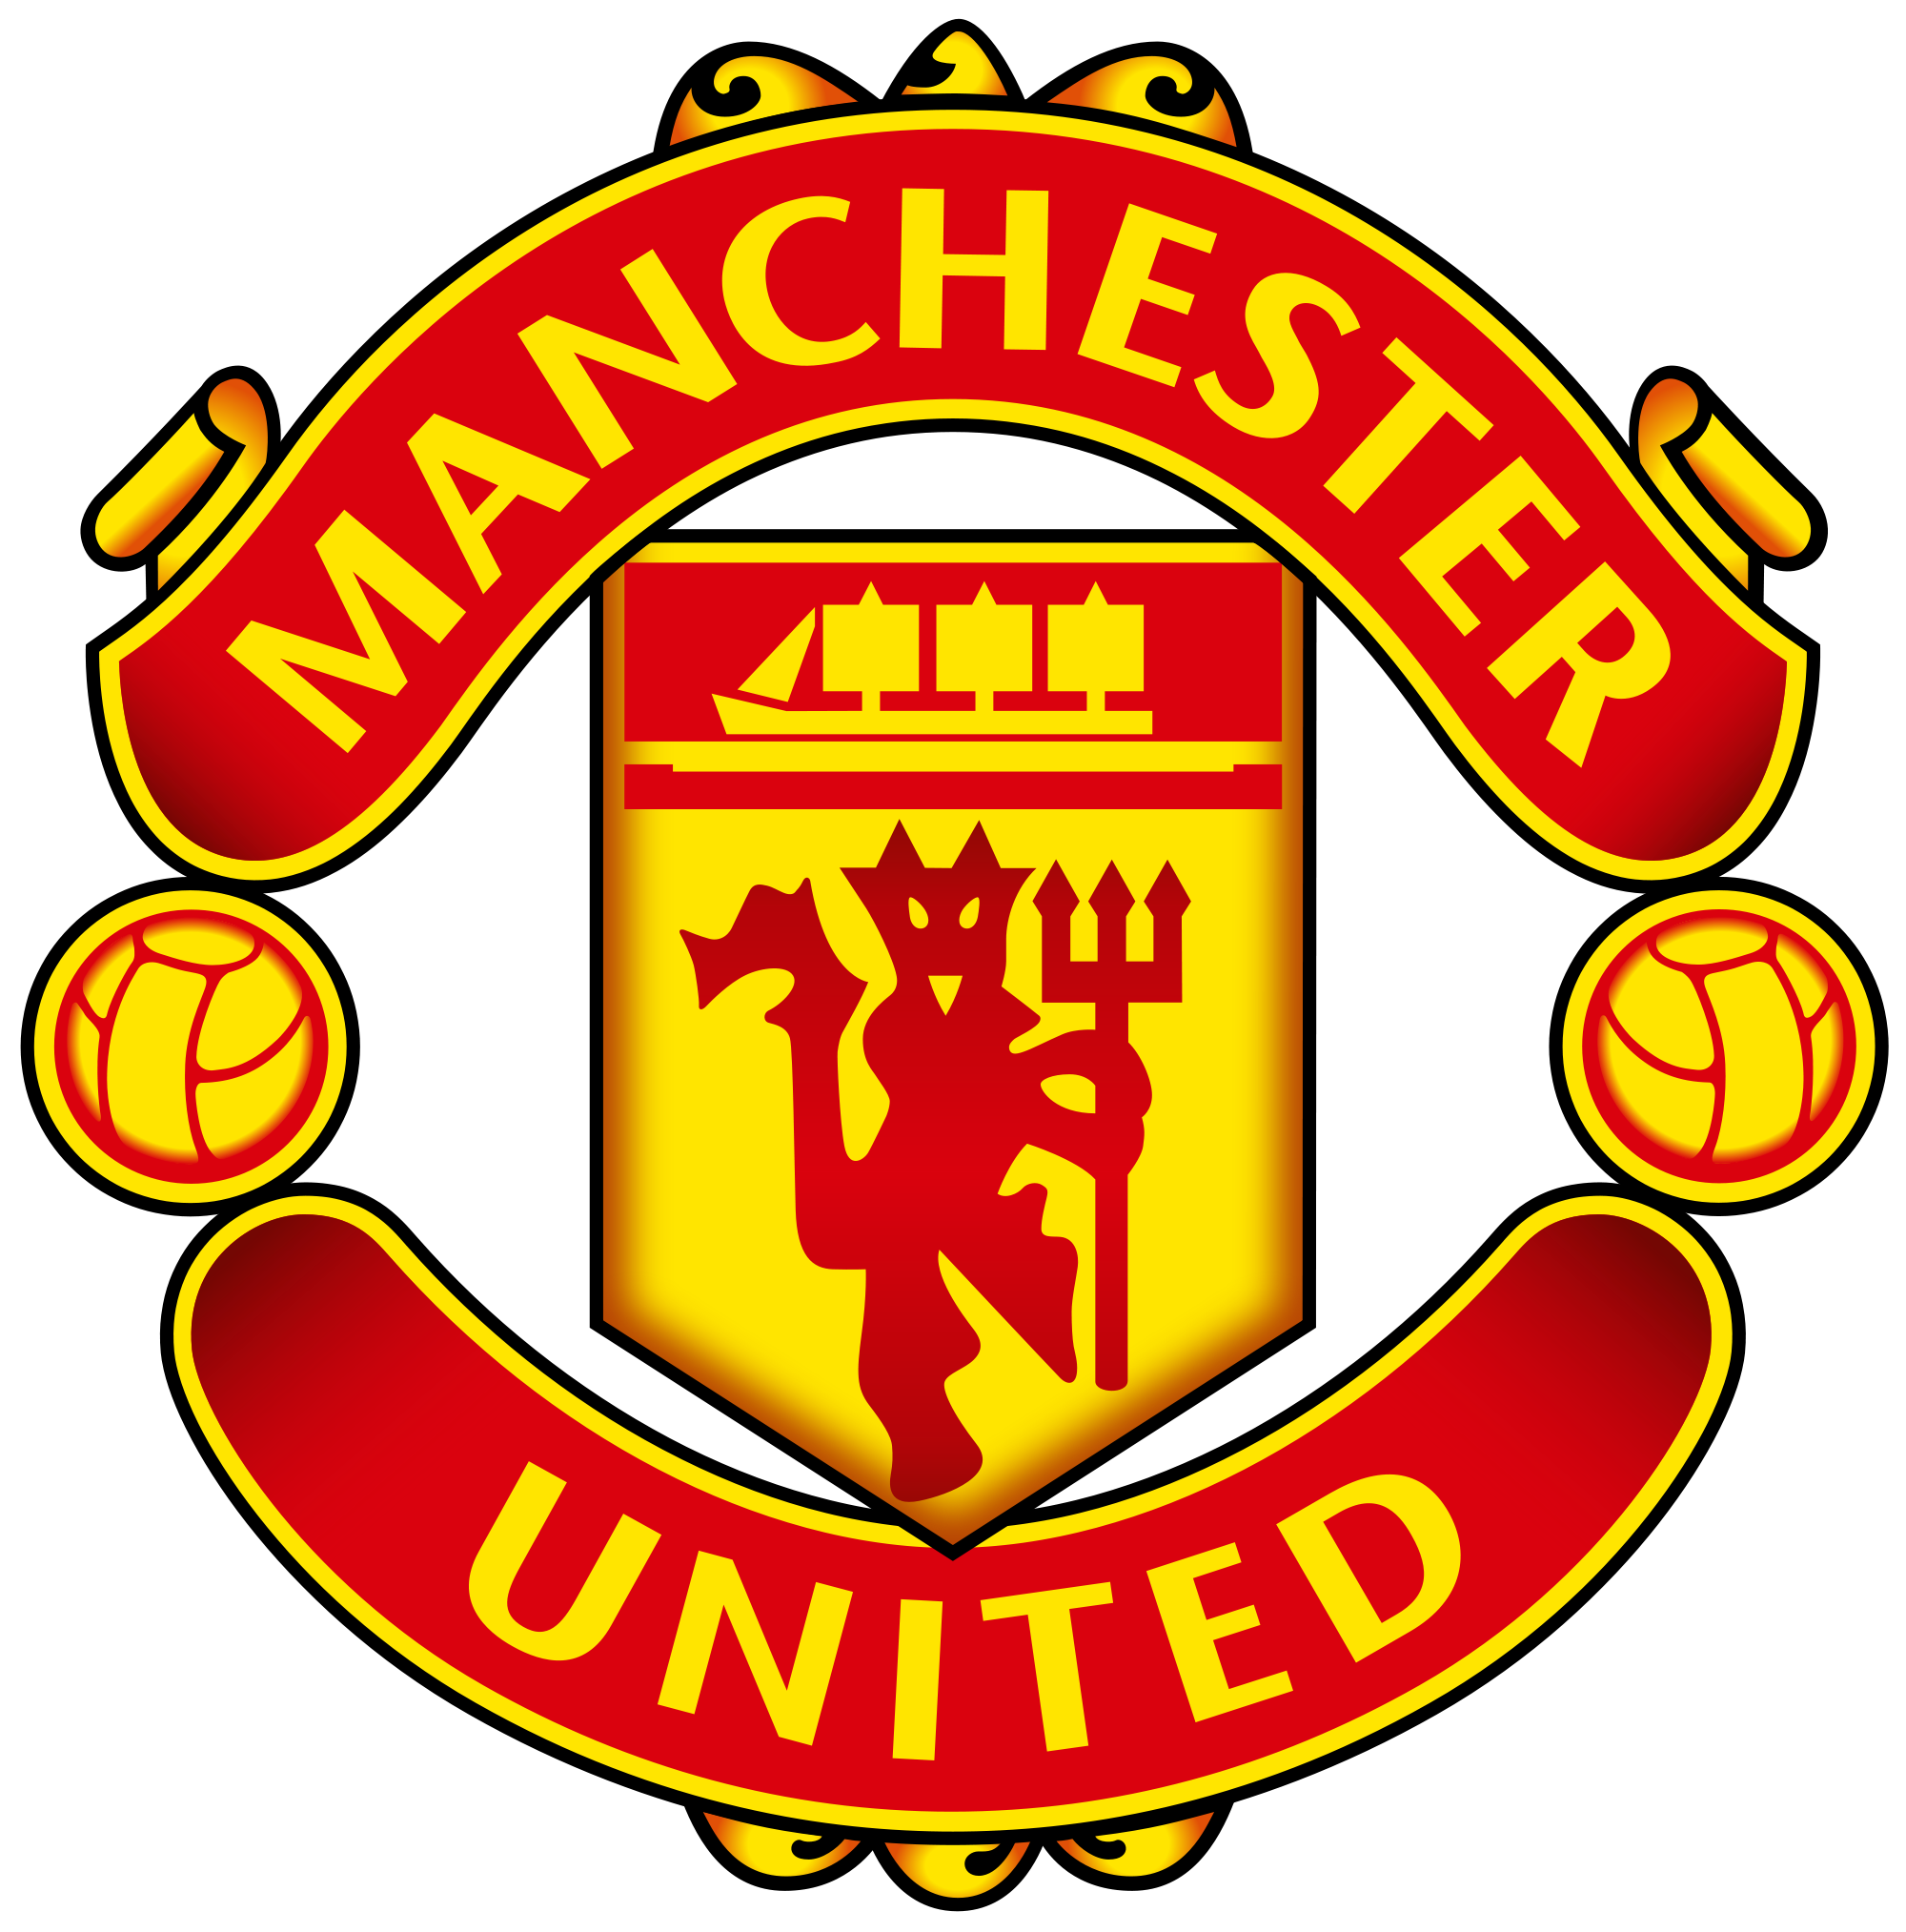 Pin By Meme Loverz On Iamunited In 2020 Manchester United Logo Manchester United Wallpaper Manchester United